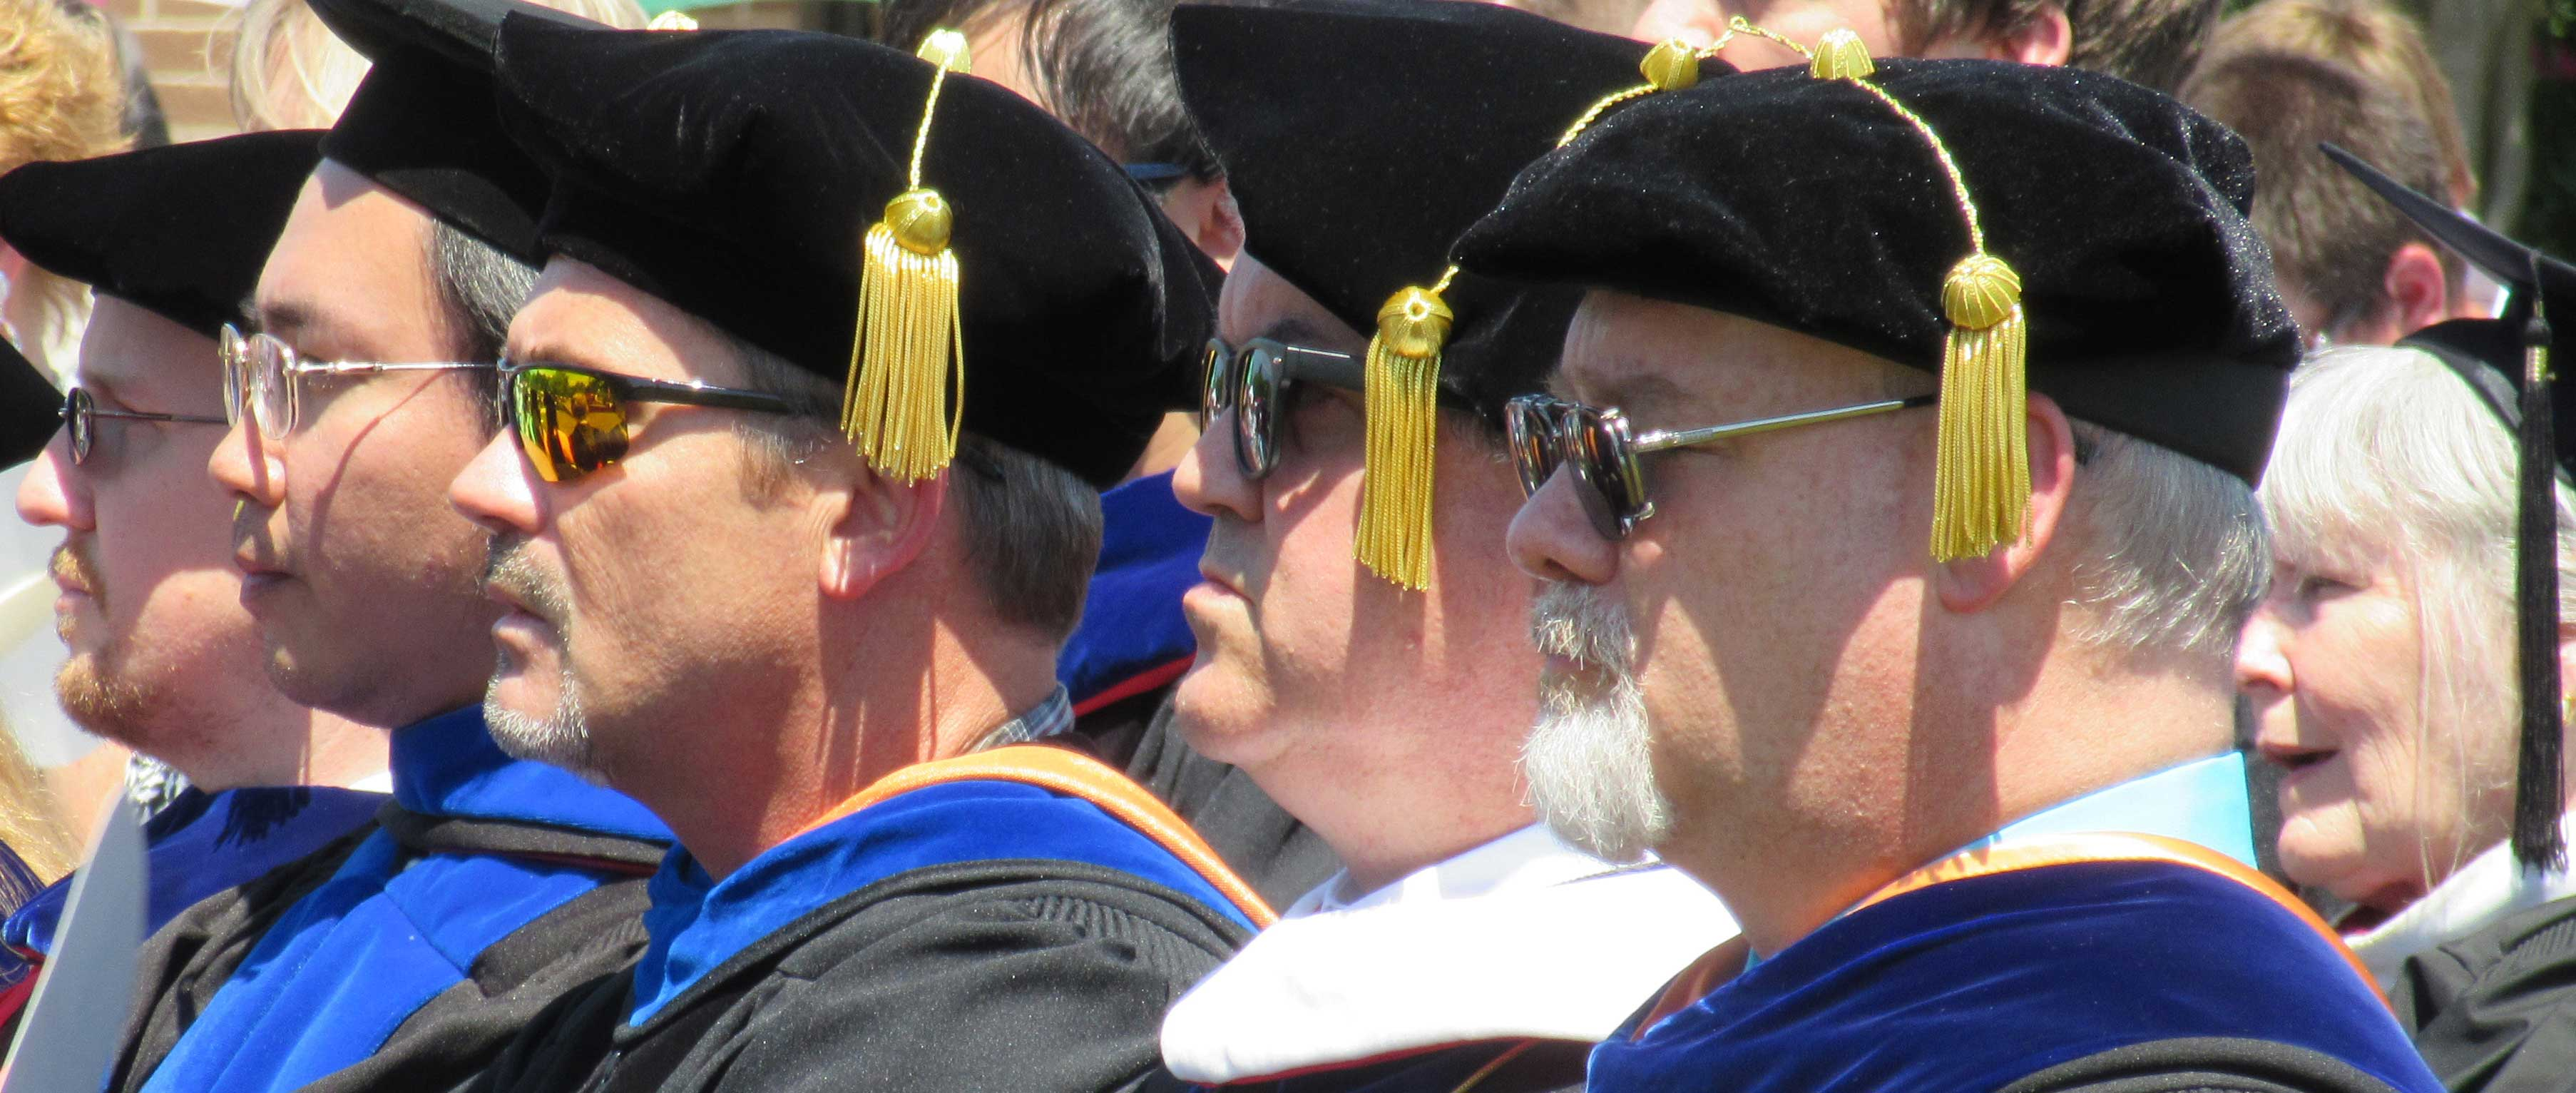 Faculty members in full regalia during commencement exercises.